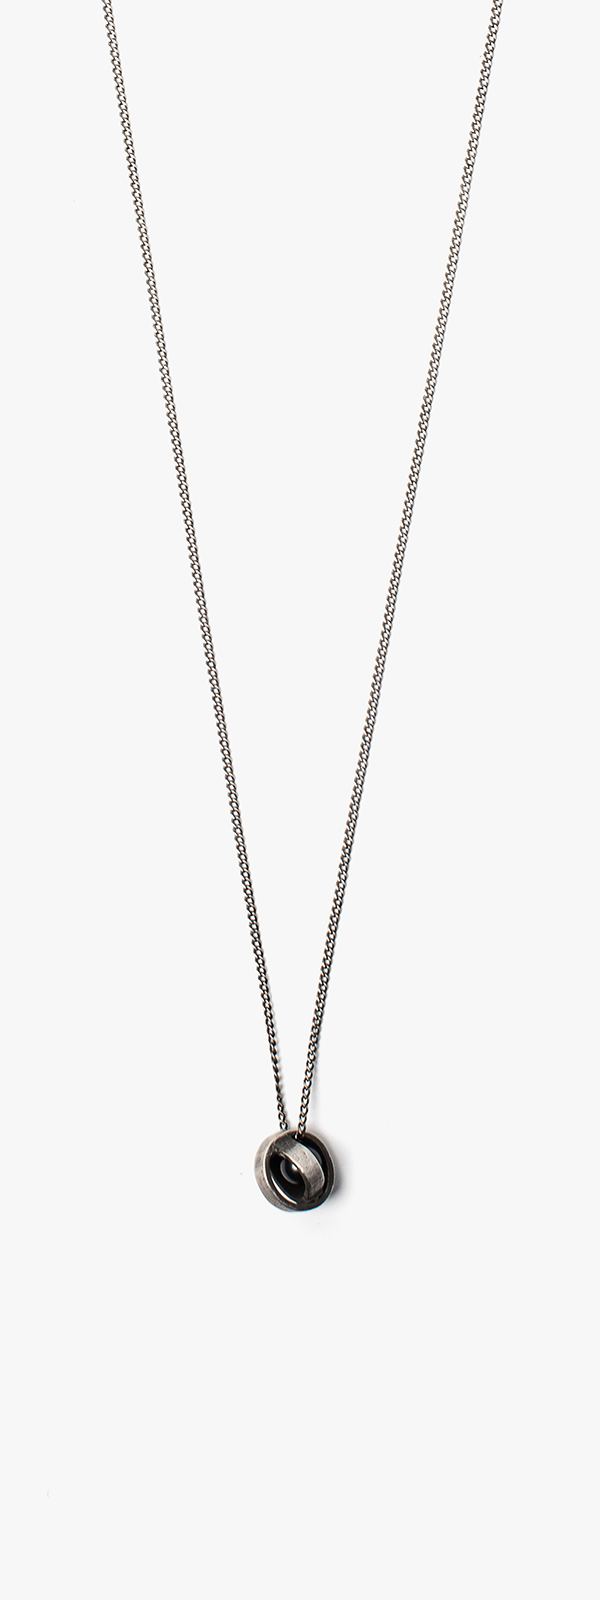 Image of Amulet Black Pearl Necklace 015